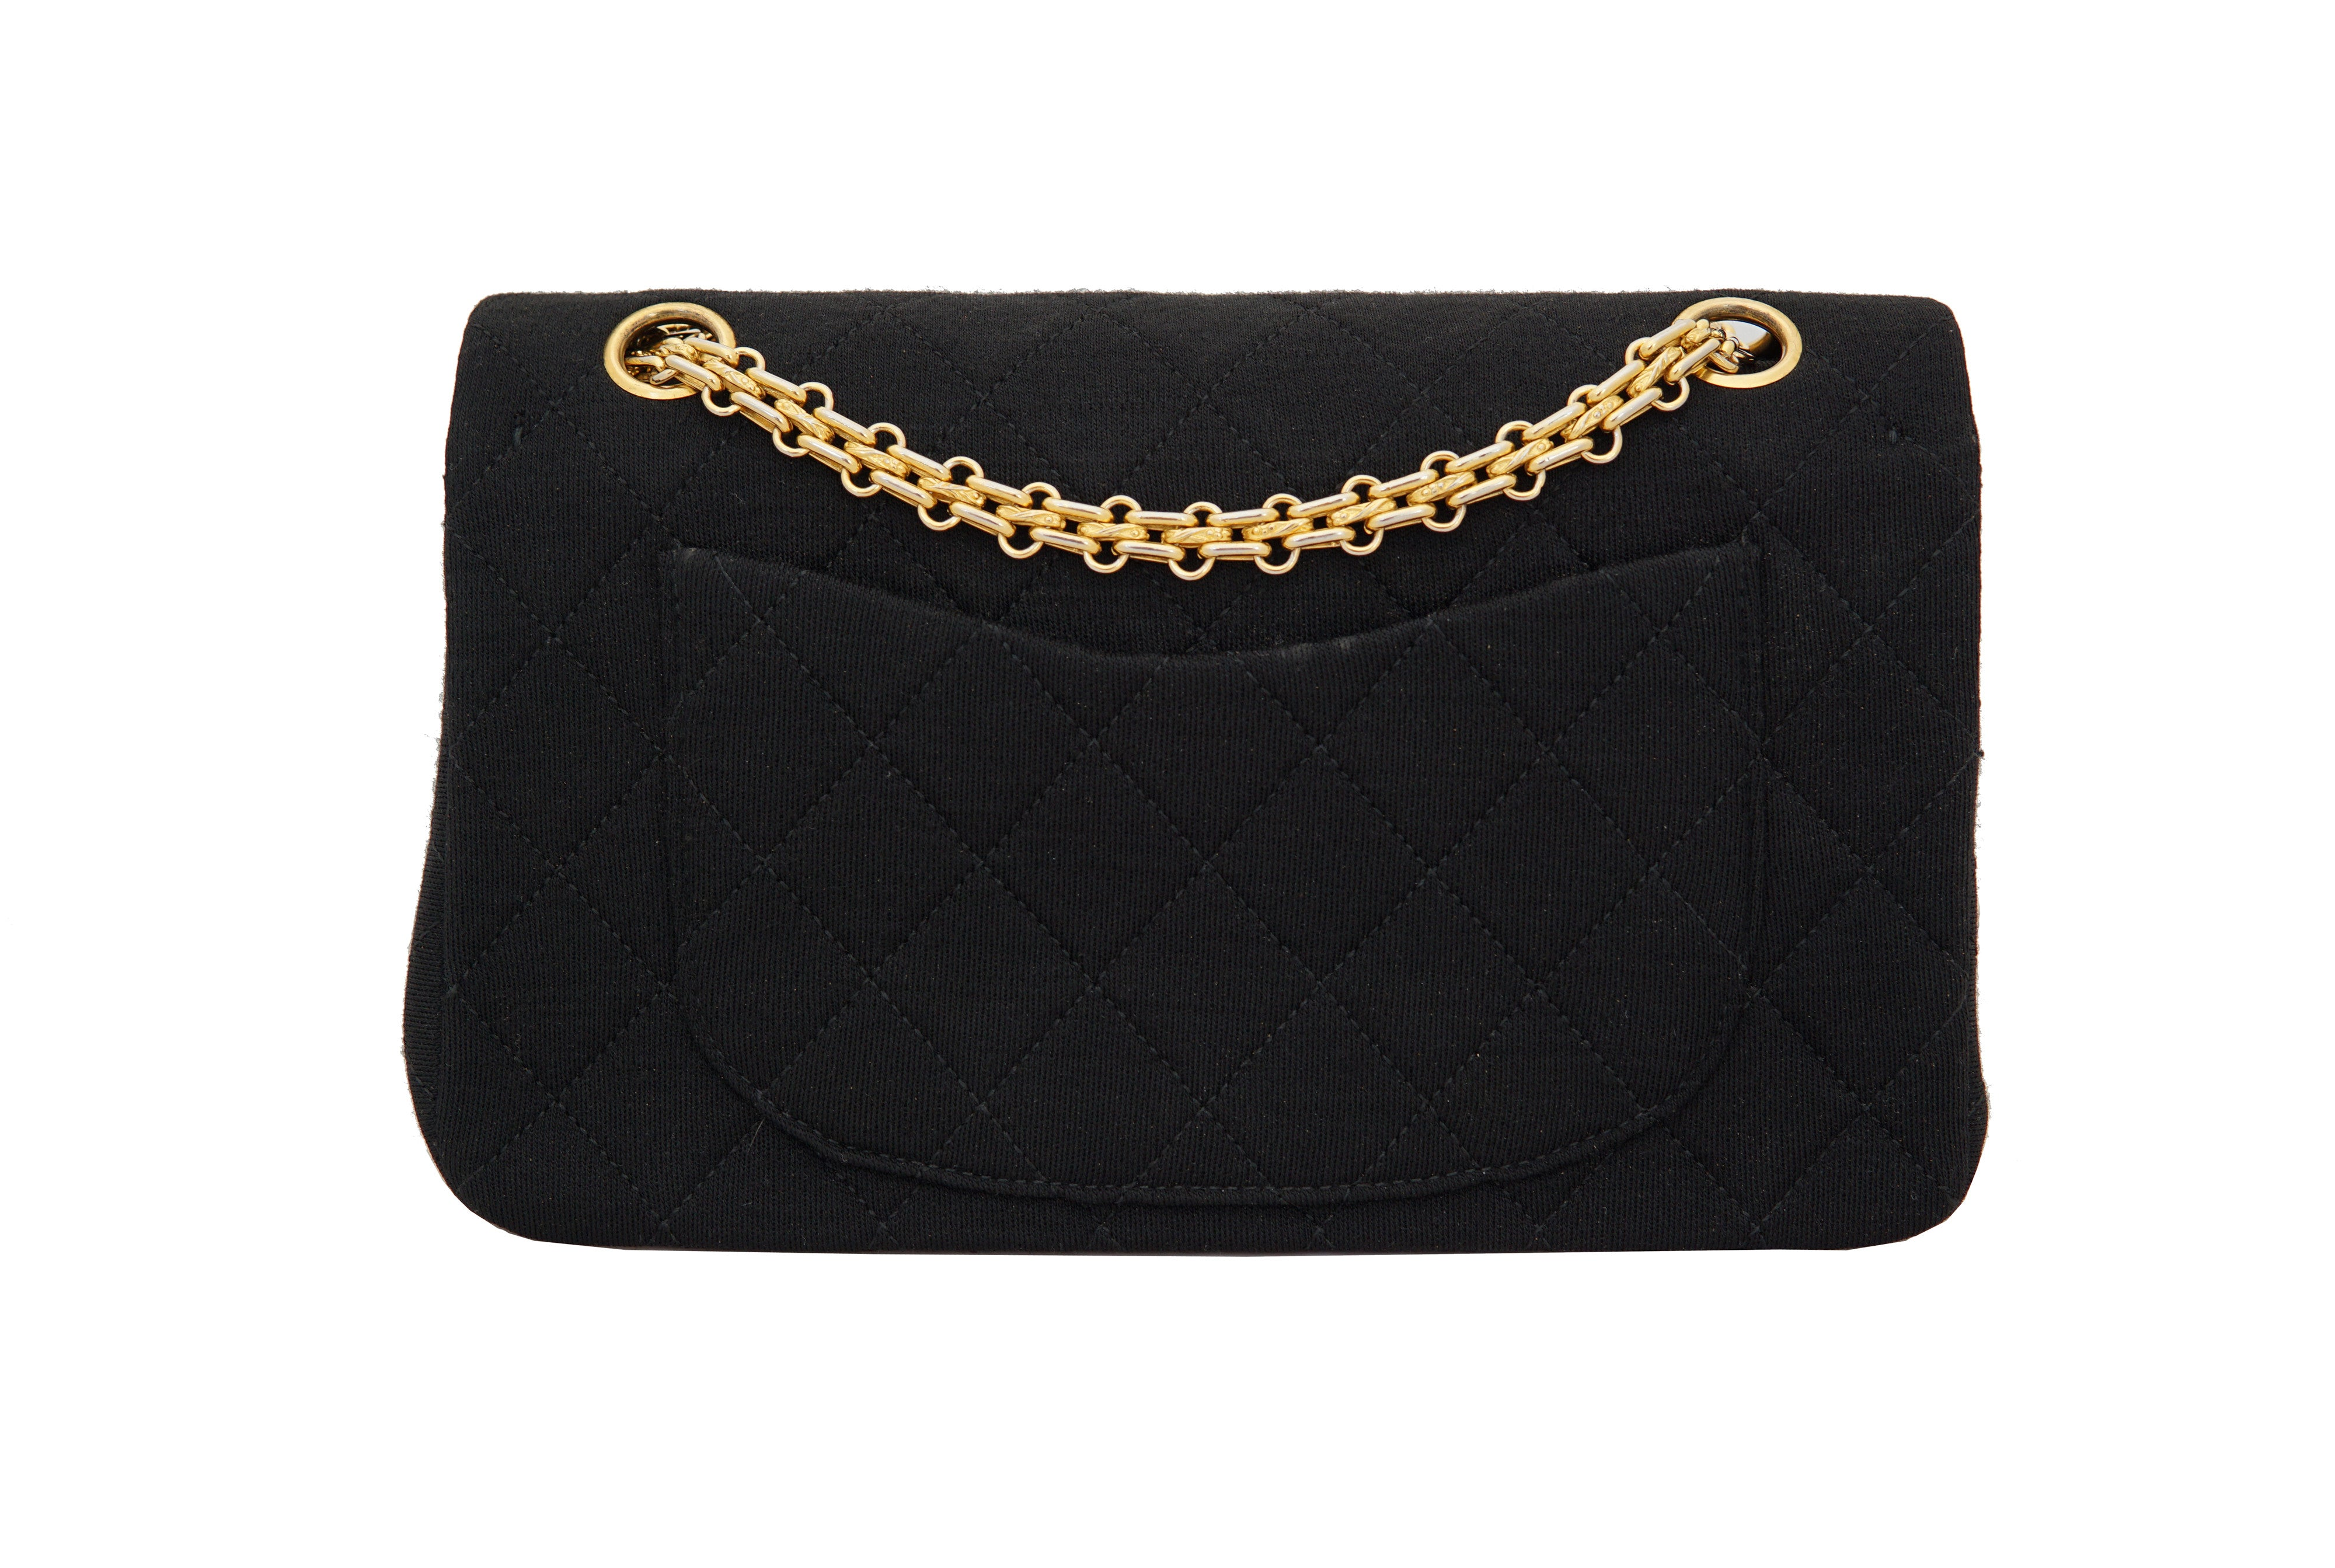 fe391552ed13f4 CHANEL VINTAGE 2.55 BAG - Classic Quilted Jersey in Black